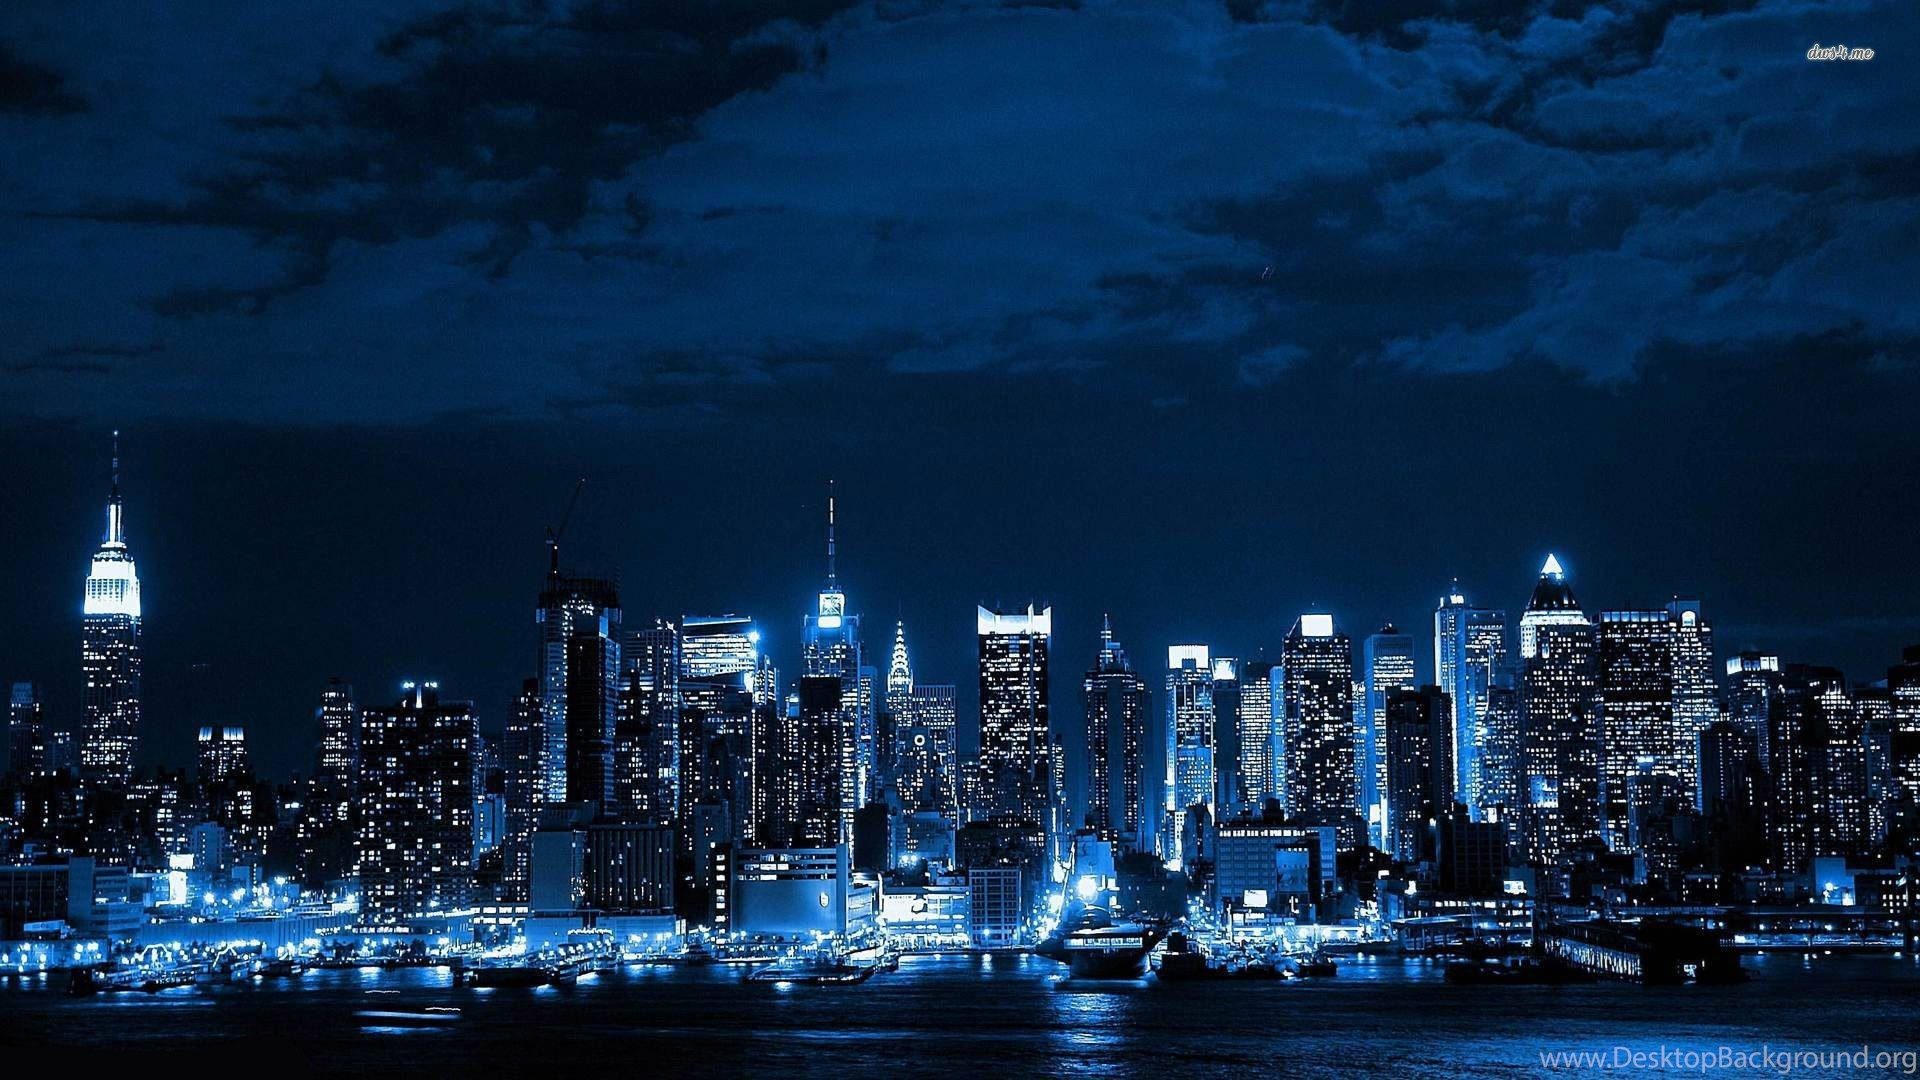 New york city skylines at night full hd wallpapers desktop - New york skyline computer wallpaper ...